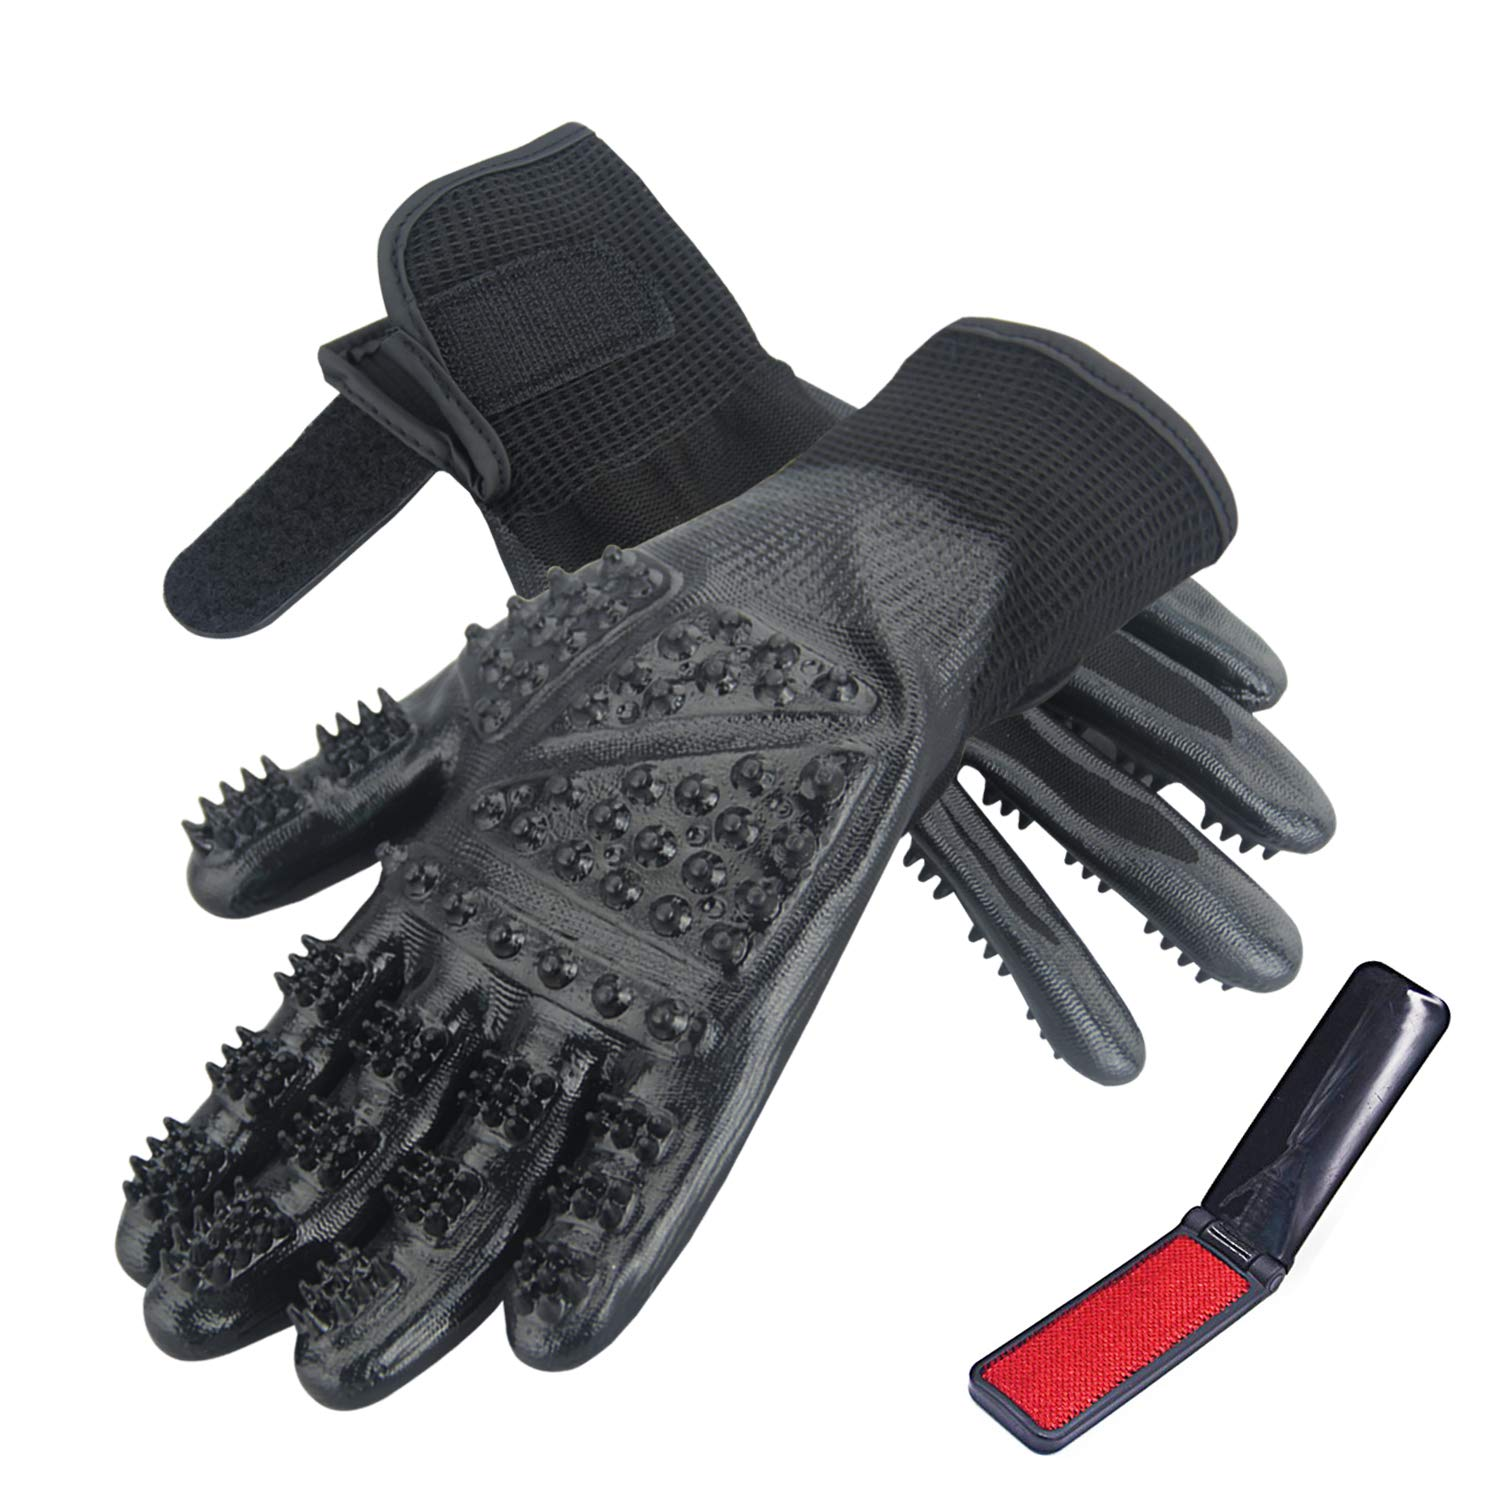 CICINY Cat Grooming Glove - Pet Grooming Glove for Cats and Dogs Horse Rabbit Hair Removal - De-Shedding Gloves for Pet Dog Cat Bathing or Massaging - Small Animal Grooming Kit Tools Supplies (Small)